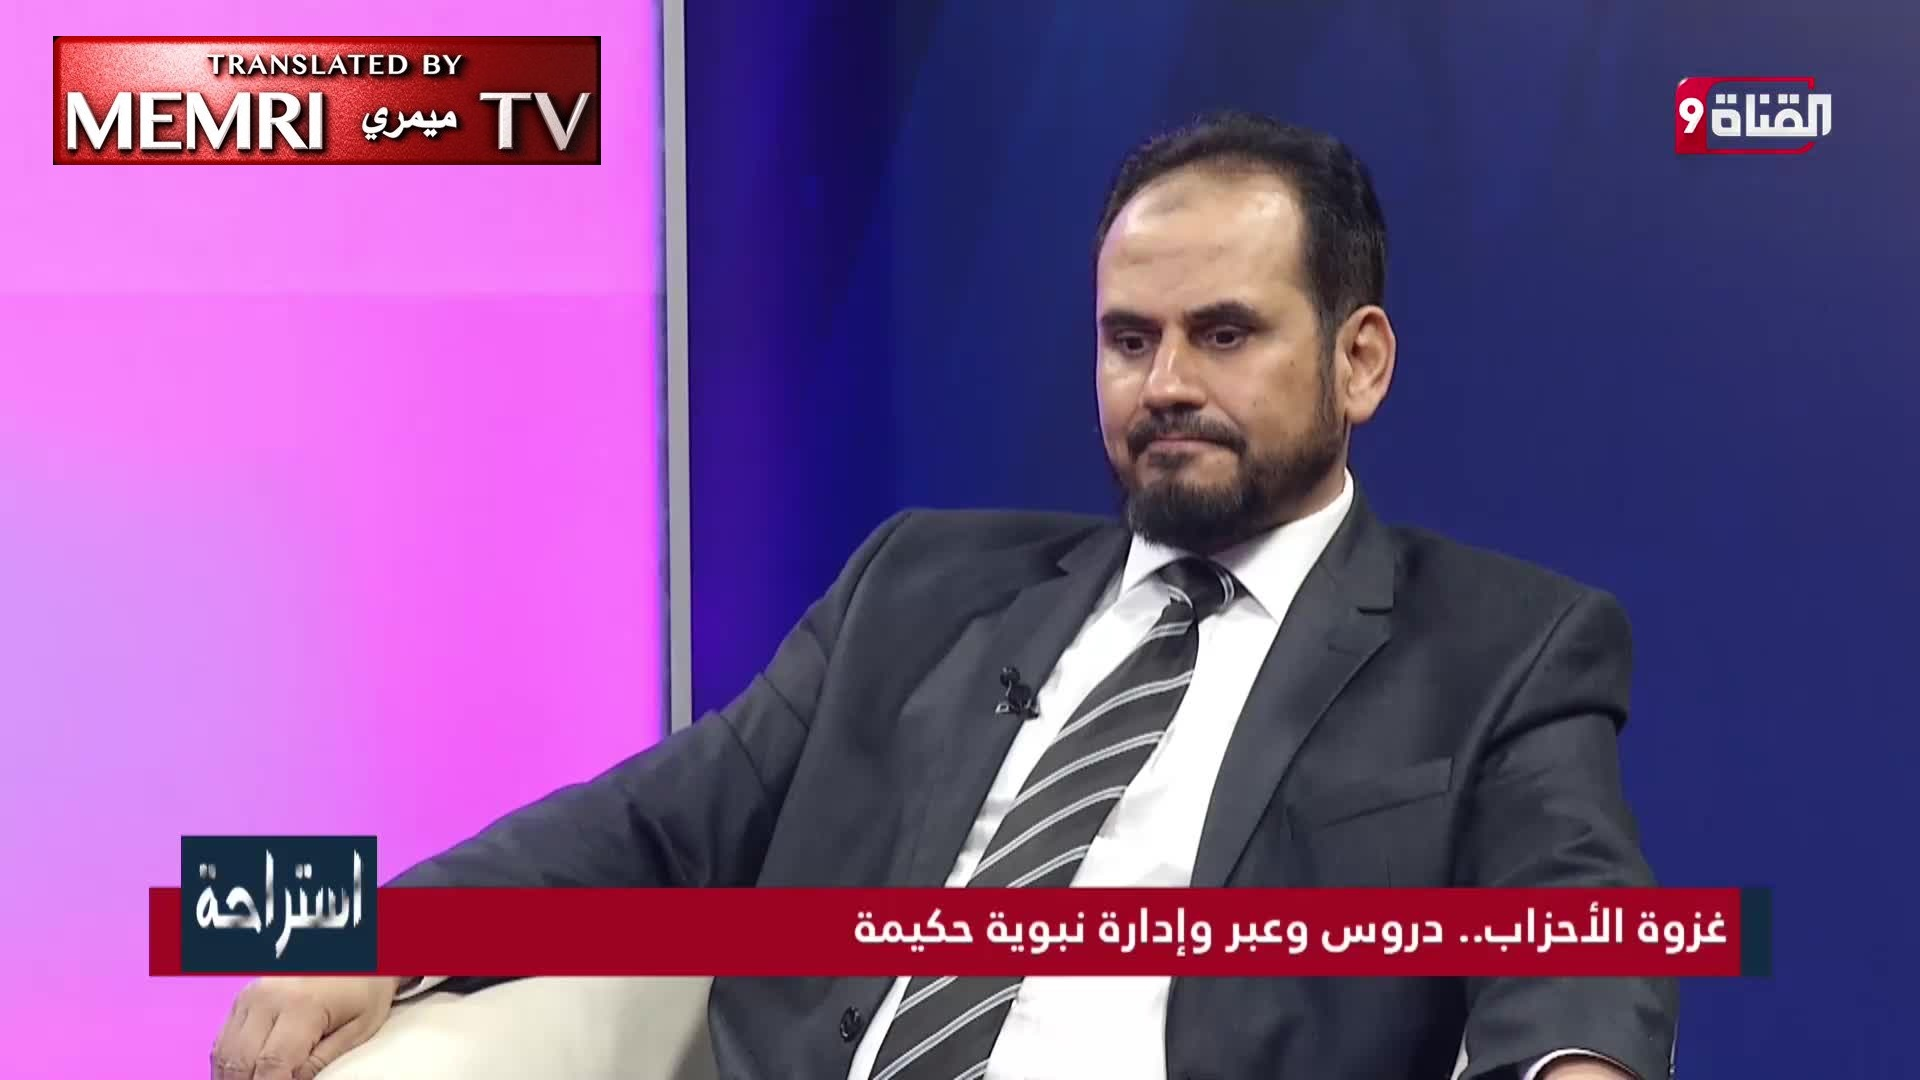 Libyan Researcher Dr. Ali Al-Siba'i: The Jews Are the Source of All Evil; Mobilization of Our Enemies Is Part of Malicious Jewish Plot to Unite Them against Islam